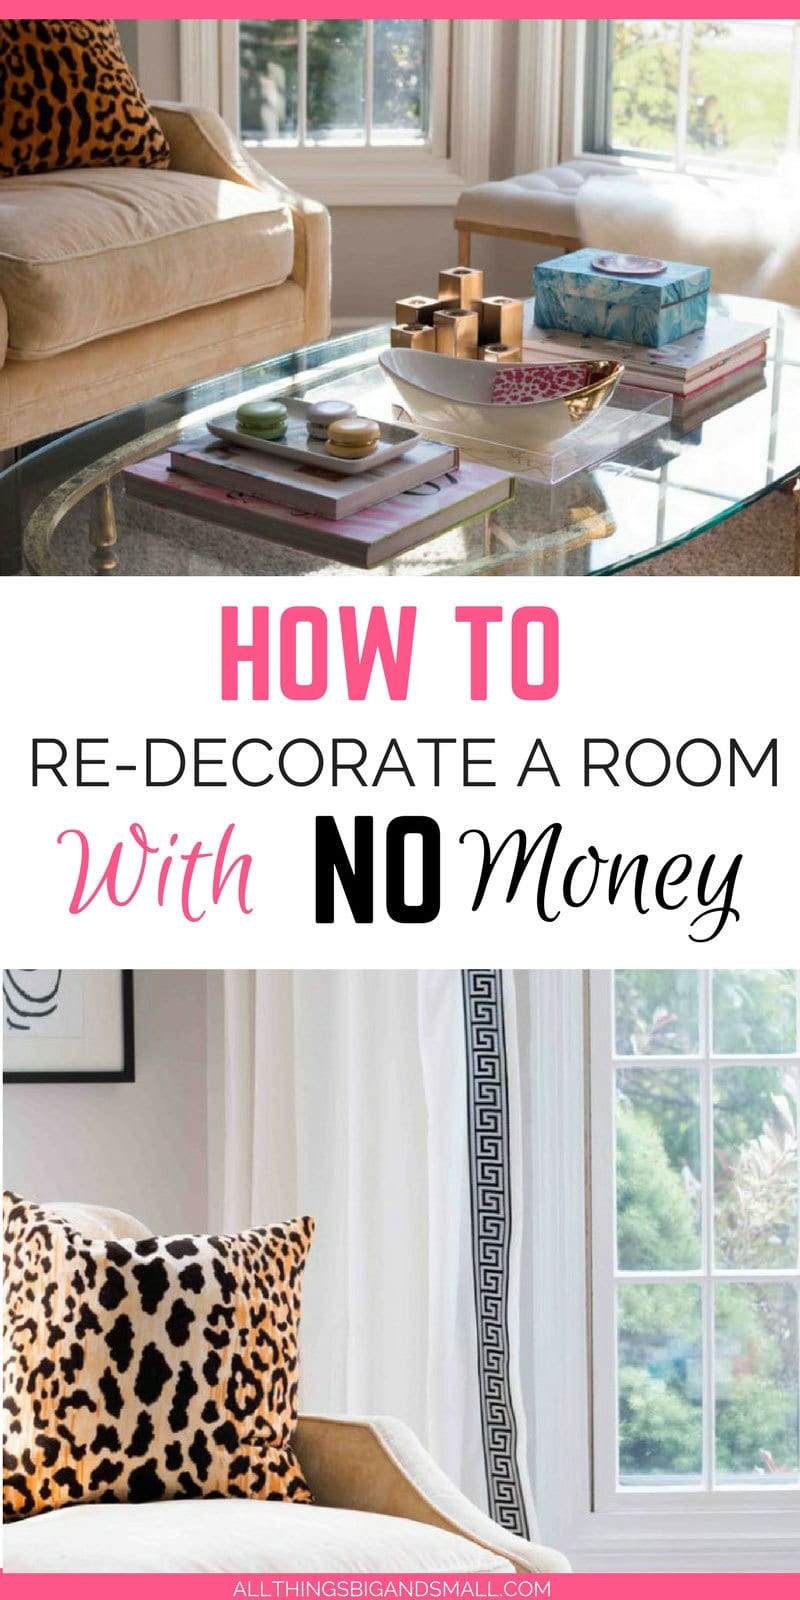 How To Decorate A Room With No Money Room Design And Layout Tips All